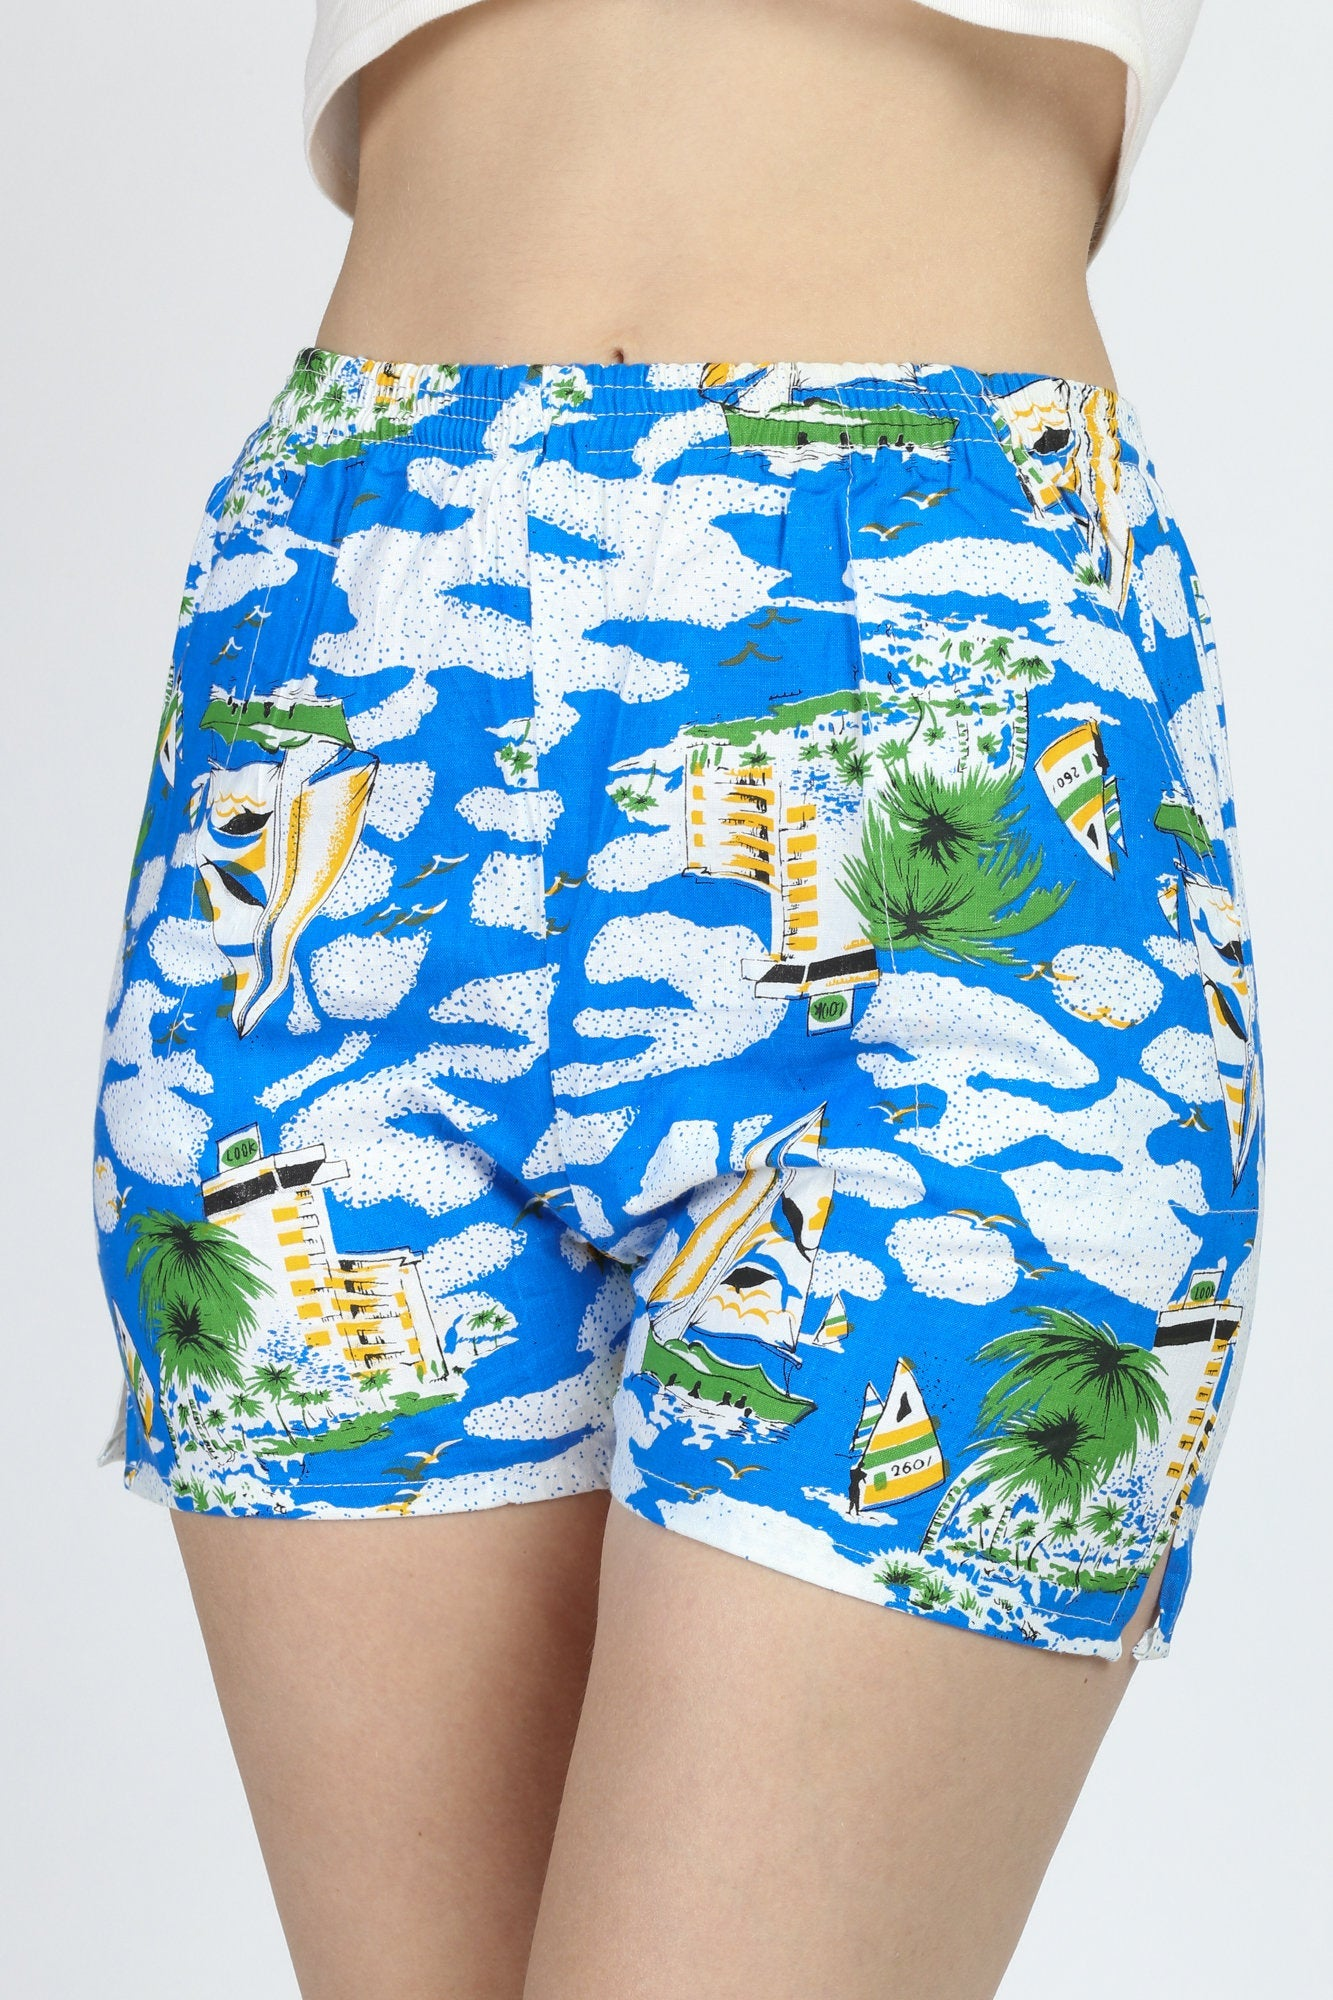 Vintage Sailboat & Palm Tree Beach Shorts - XS to Small